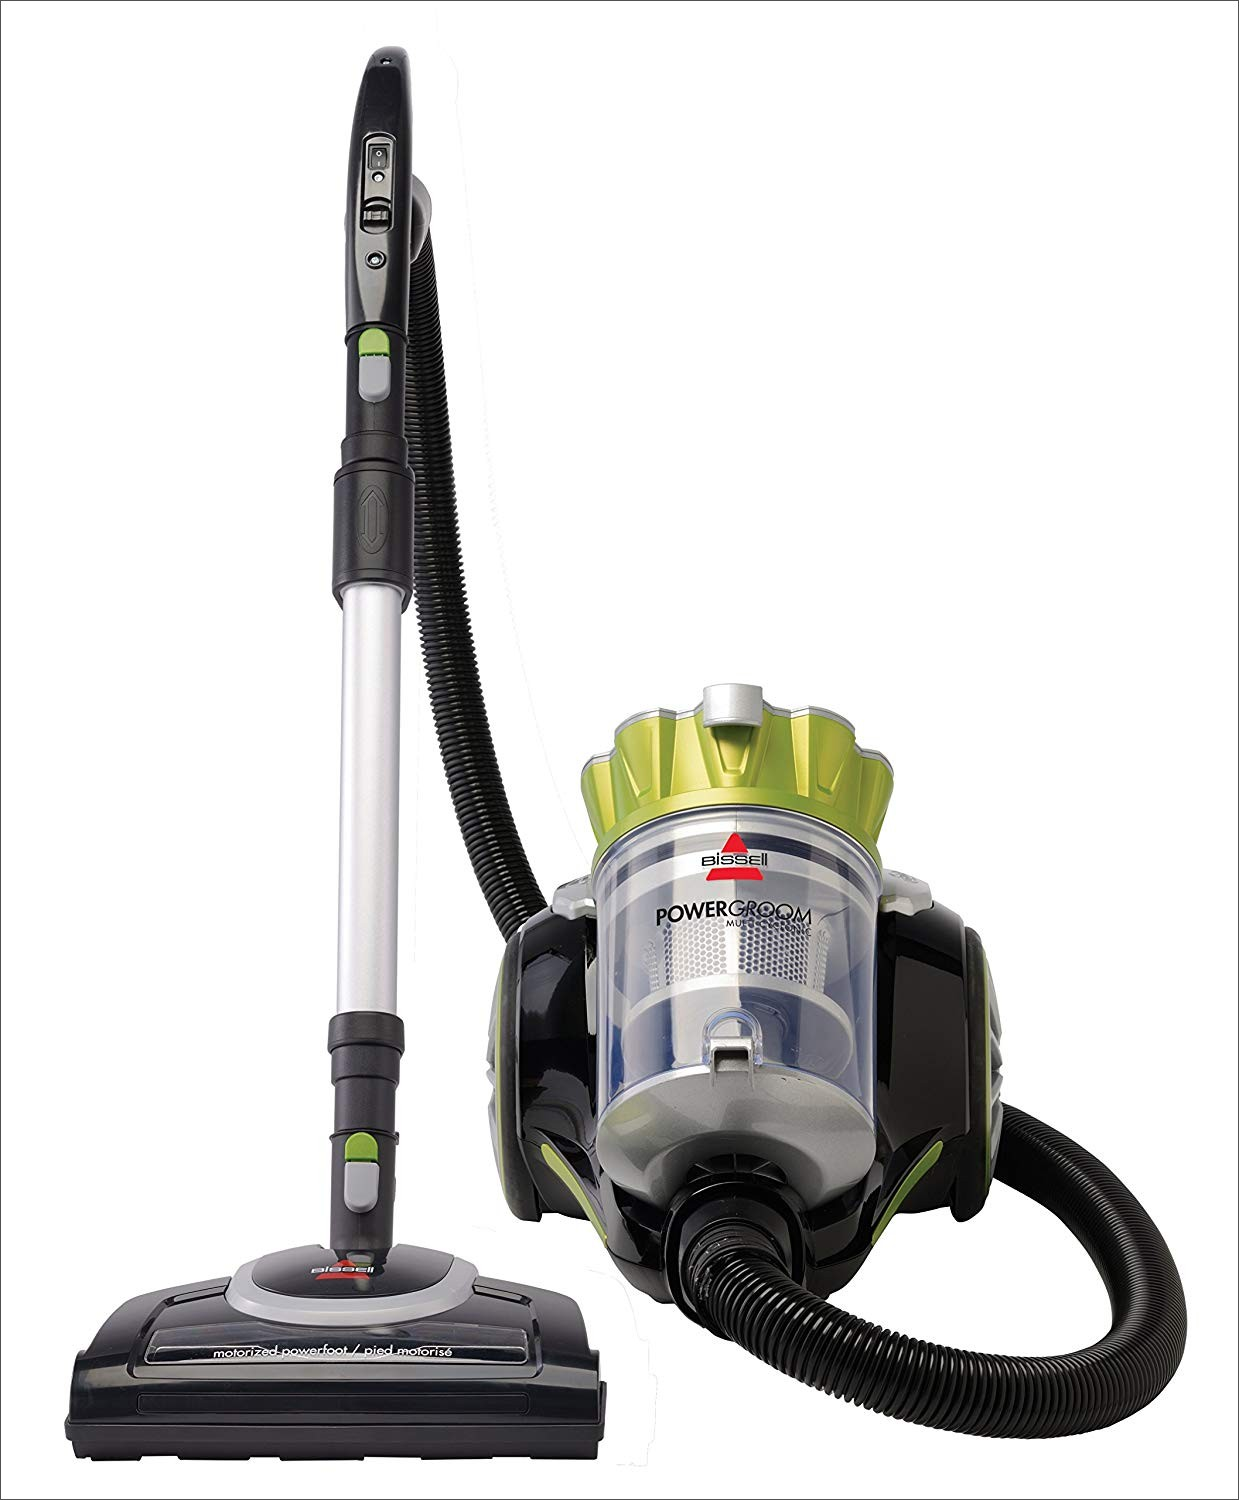 bissell powergroom multi-cyclonic bagless canister vacuum manual